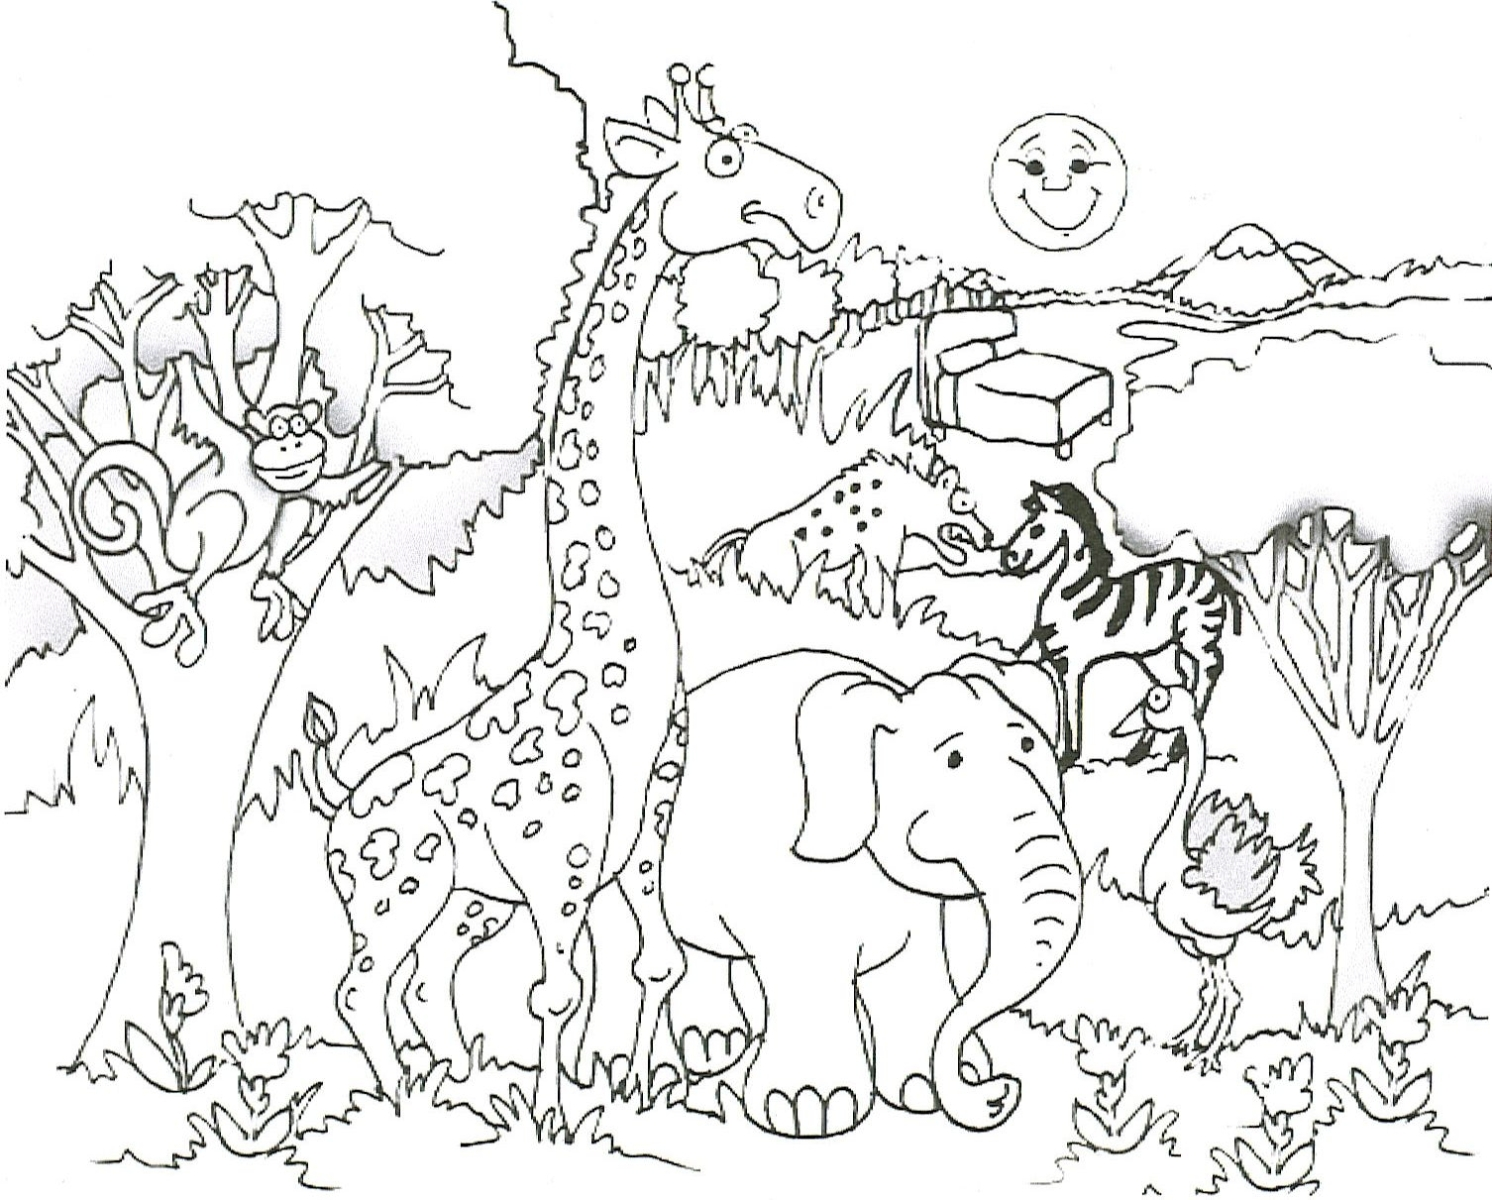 africa coloring pages to print - photo#17